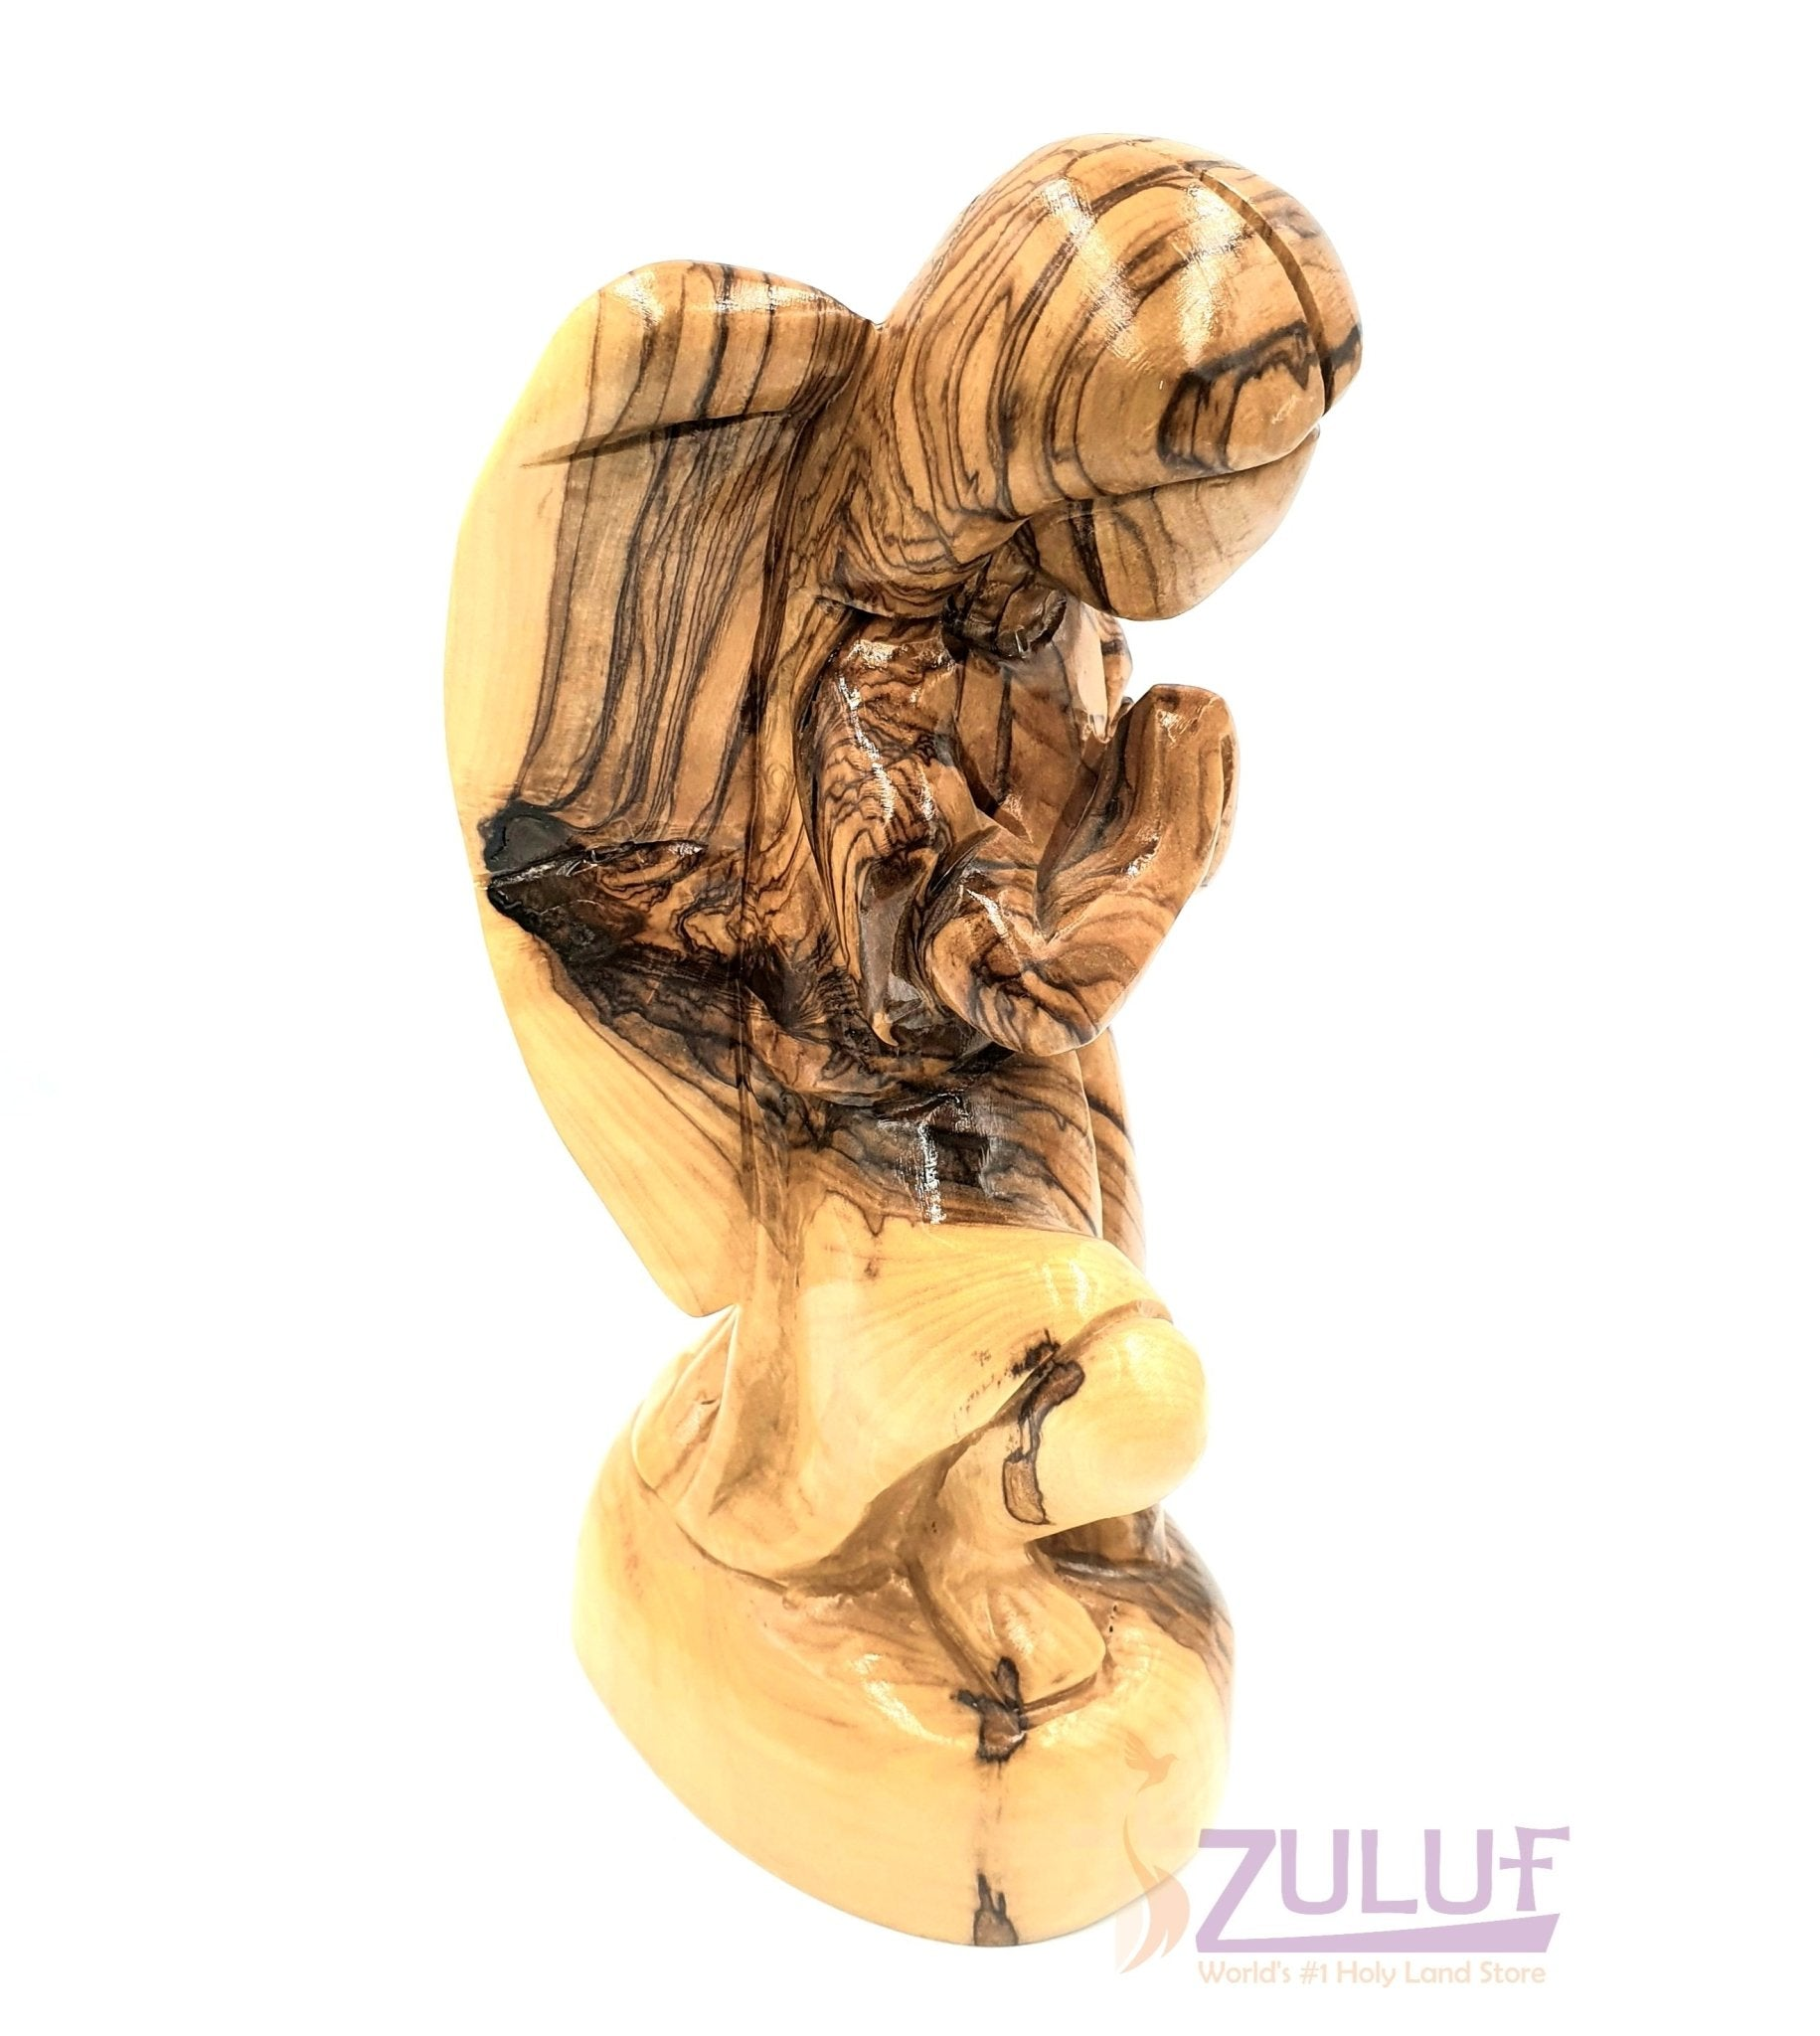 Zuluf Wooden Shop Holy Land Olive Wood Religious Gifts For Mom ANG002 - Zuluf